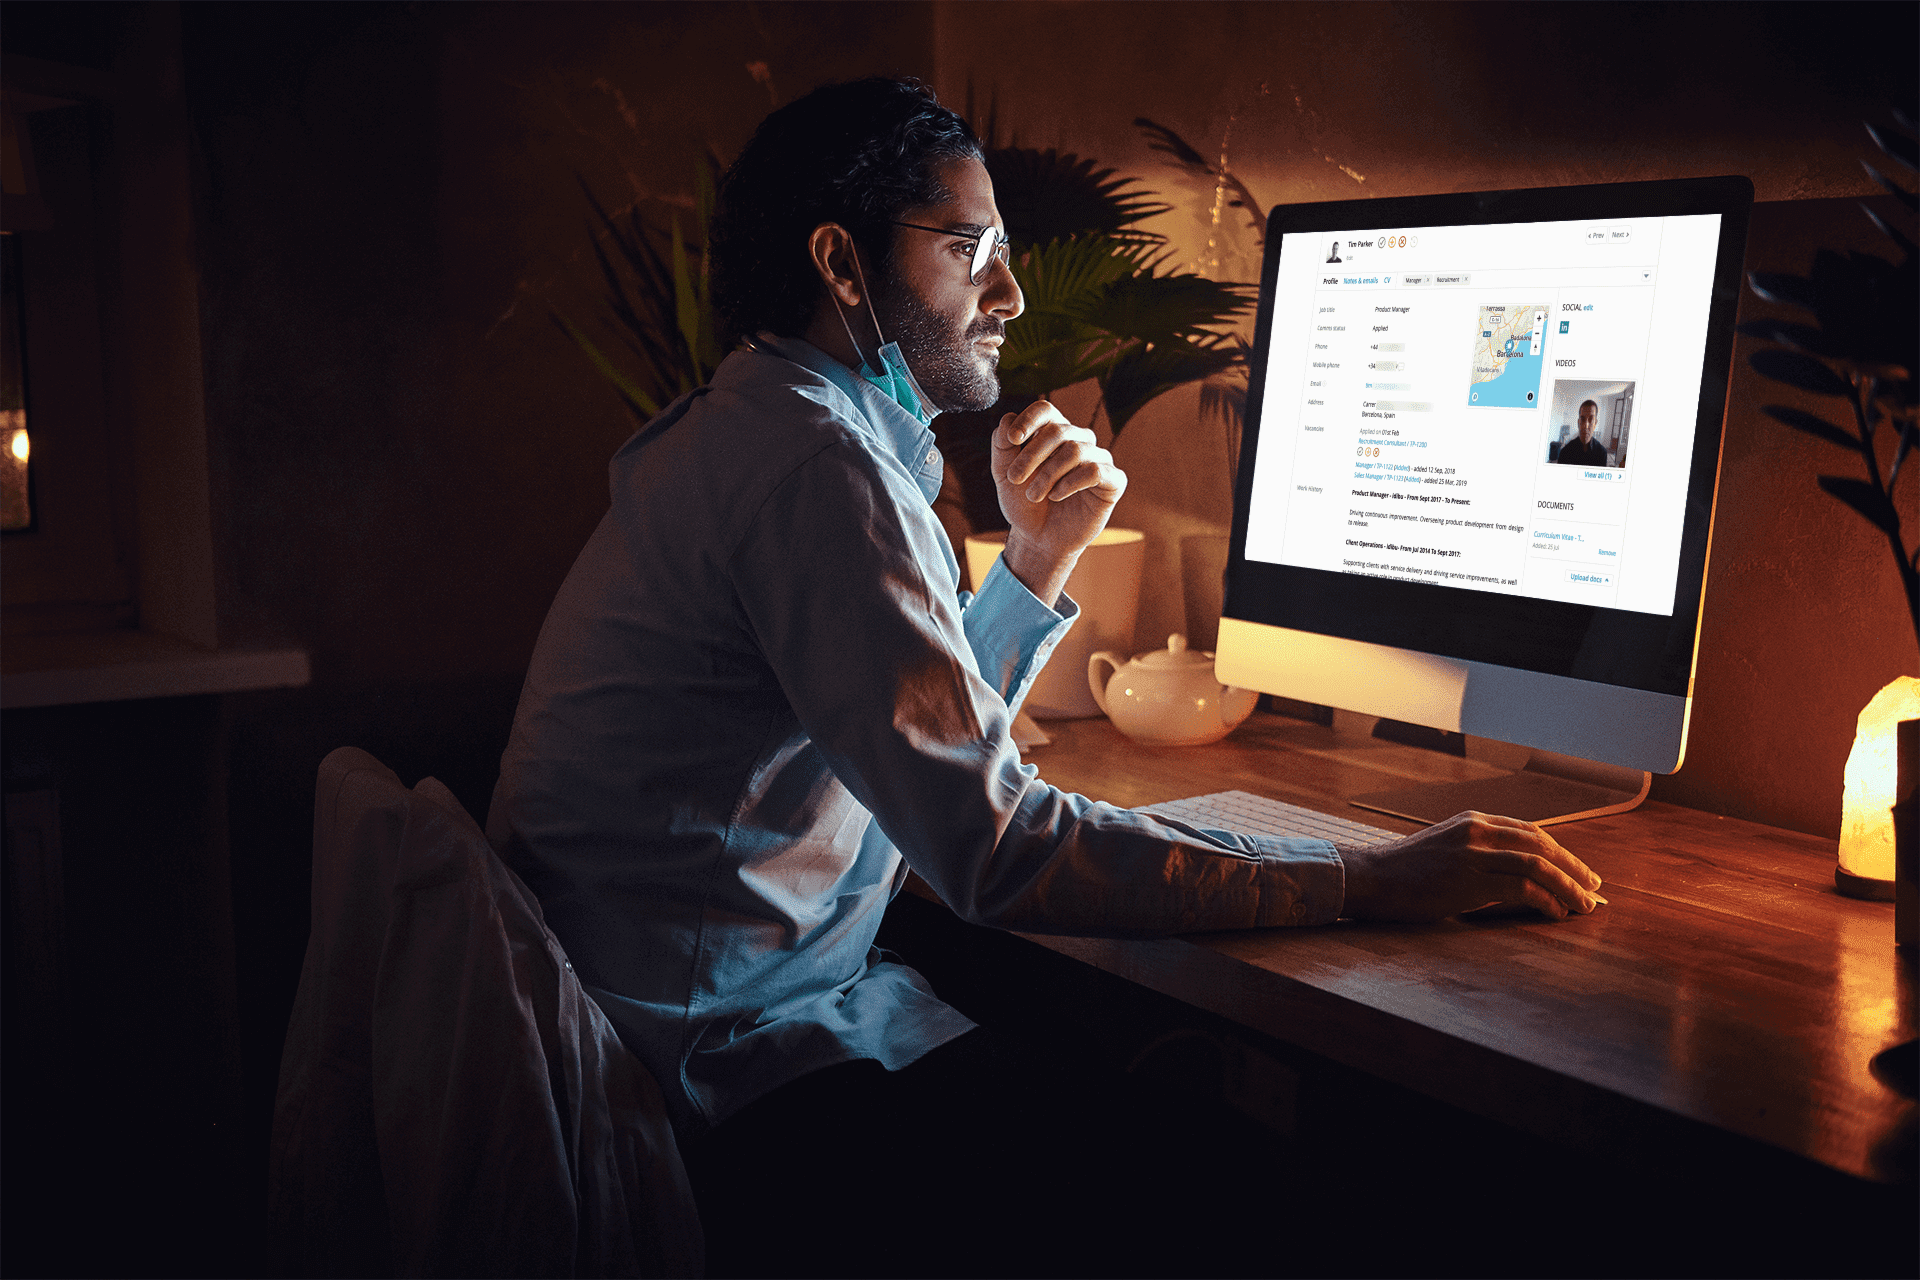 imac-mockup-of-a-man-working-from-home-36942